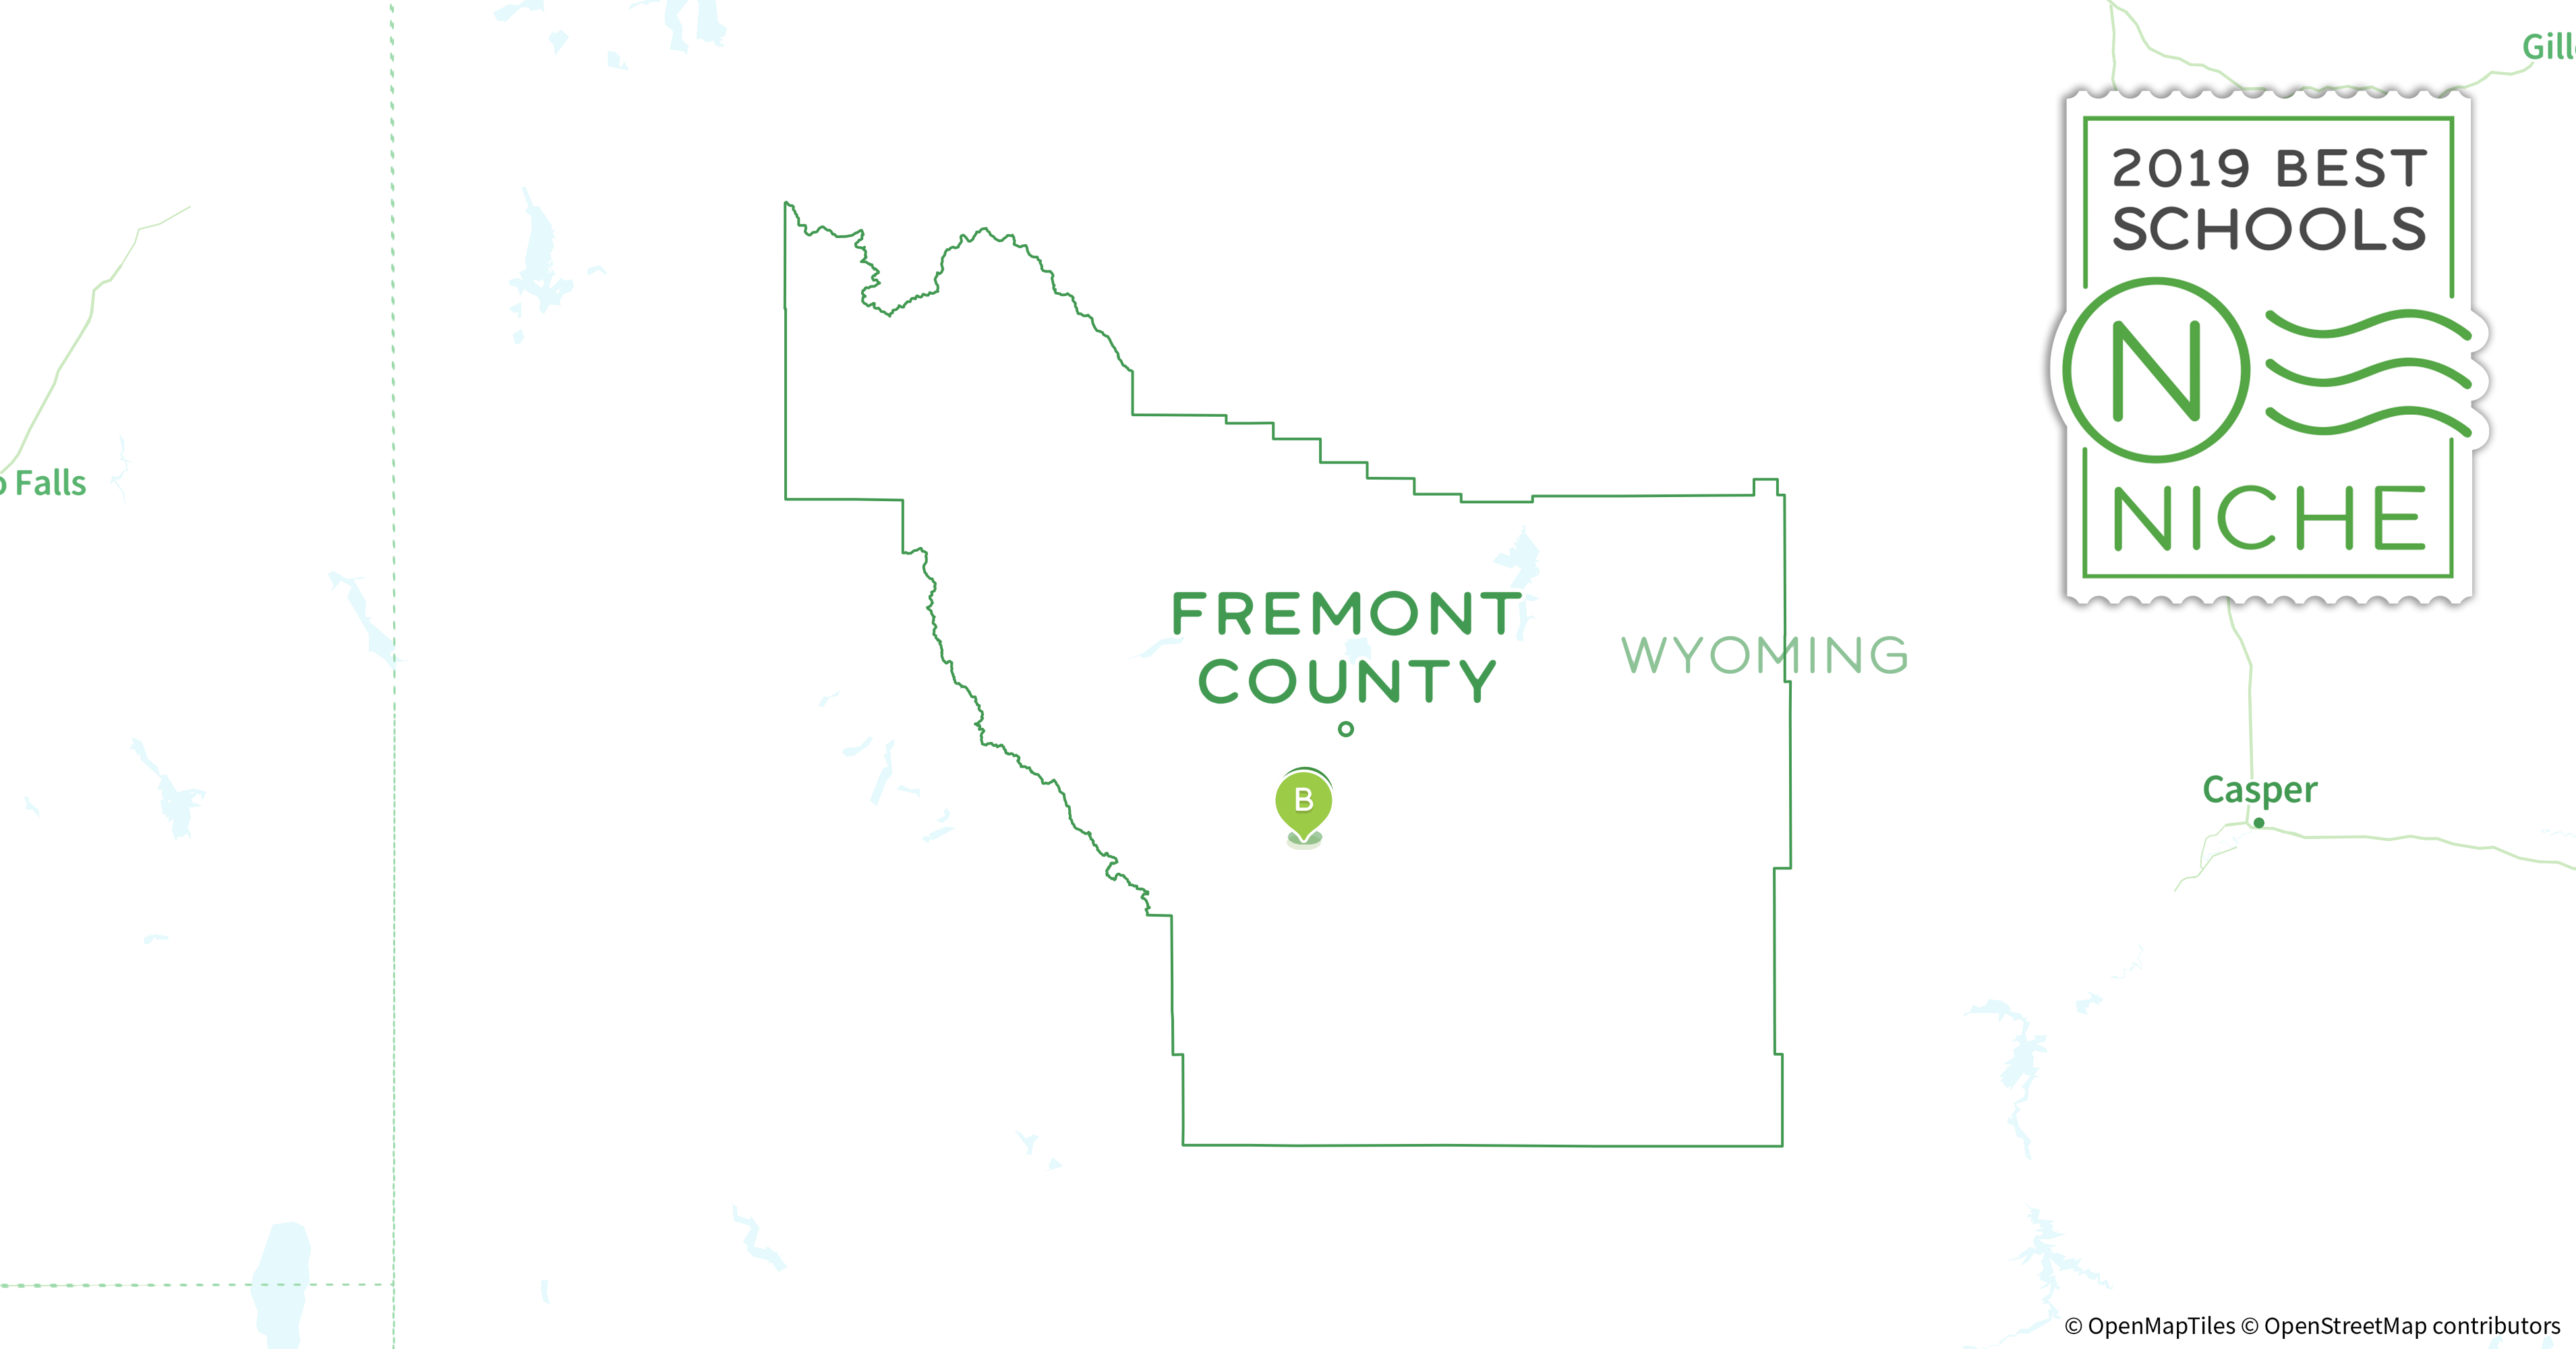 School Districts In Fremont County Wy Niche